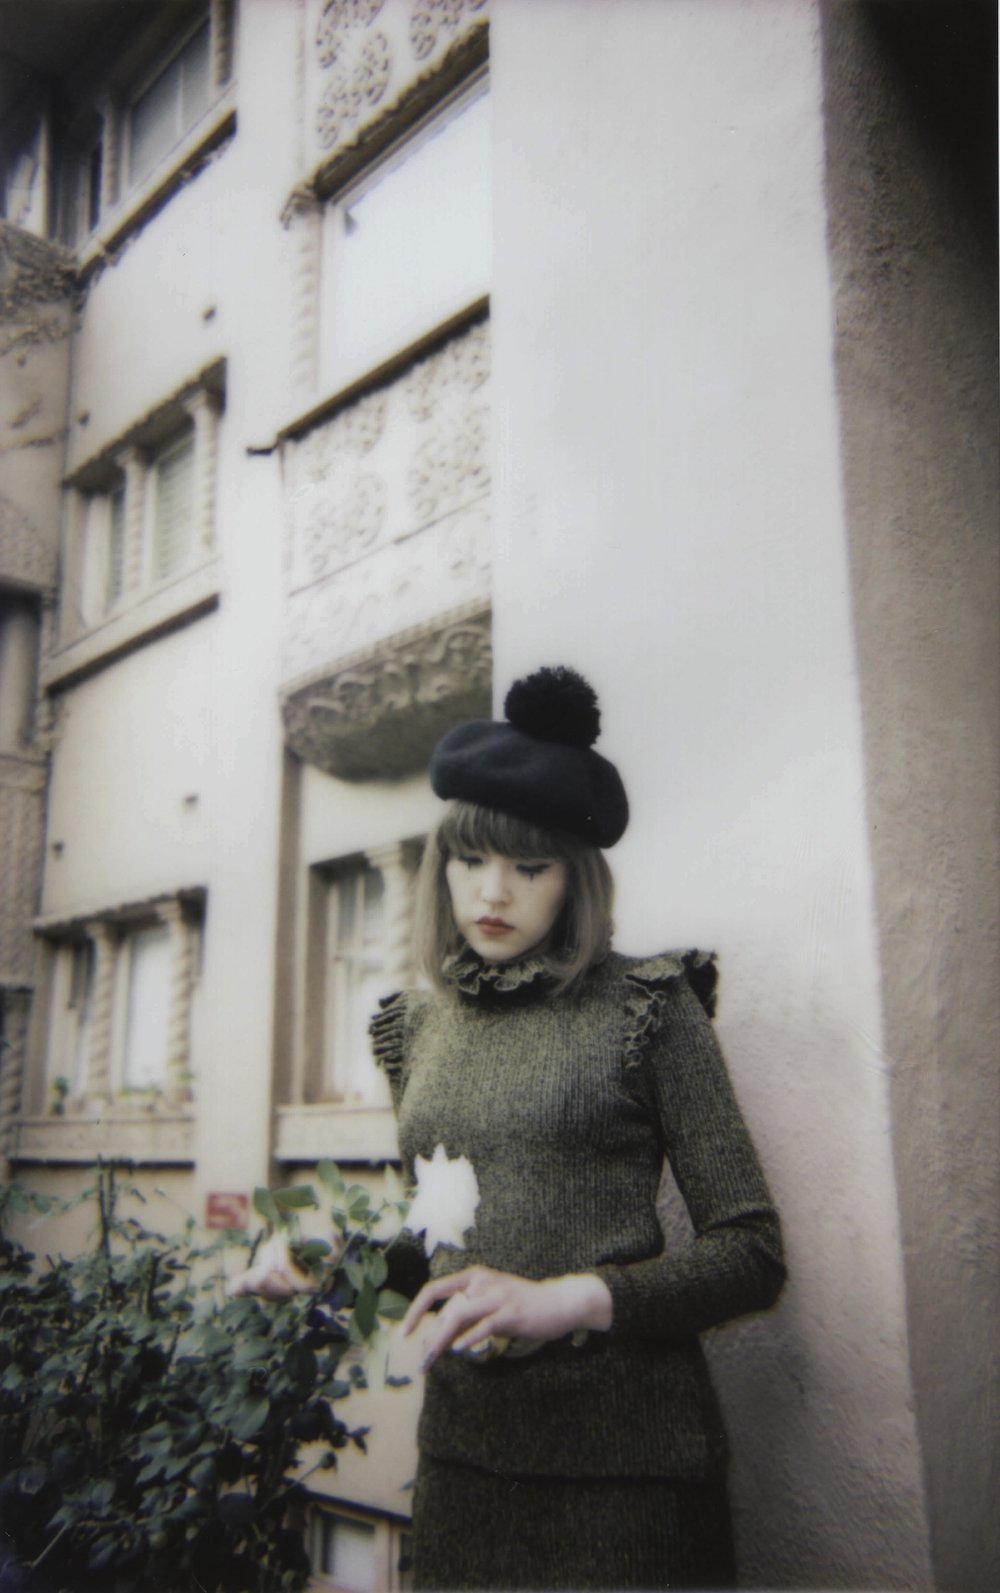 Polaroid - Look 6 - Pierrot 4.jpg